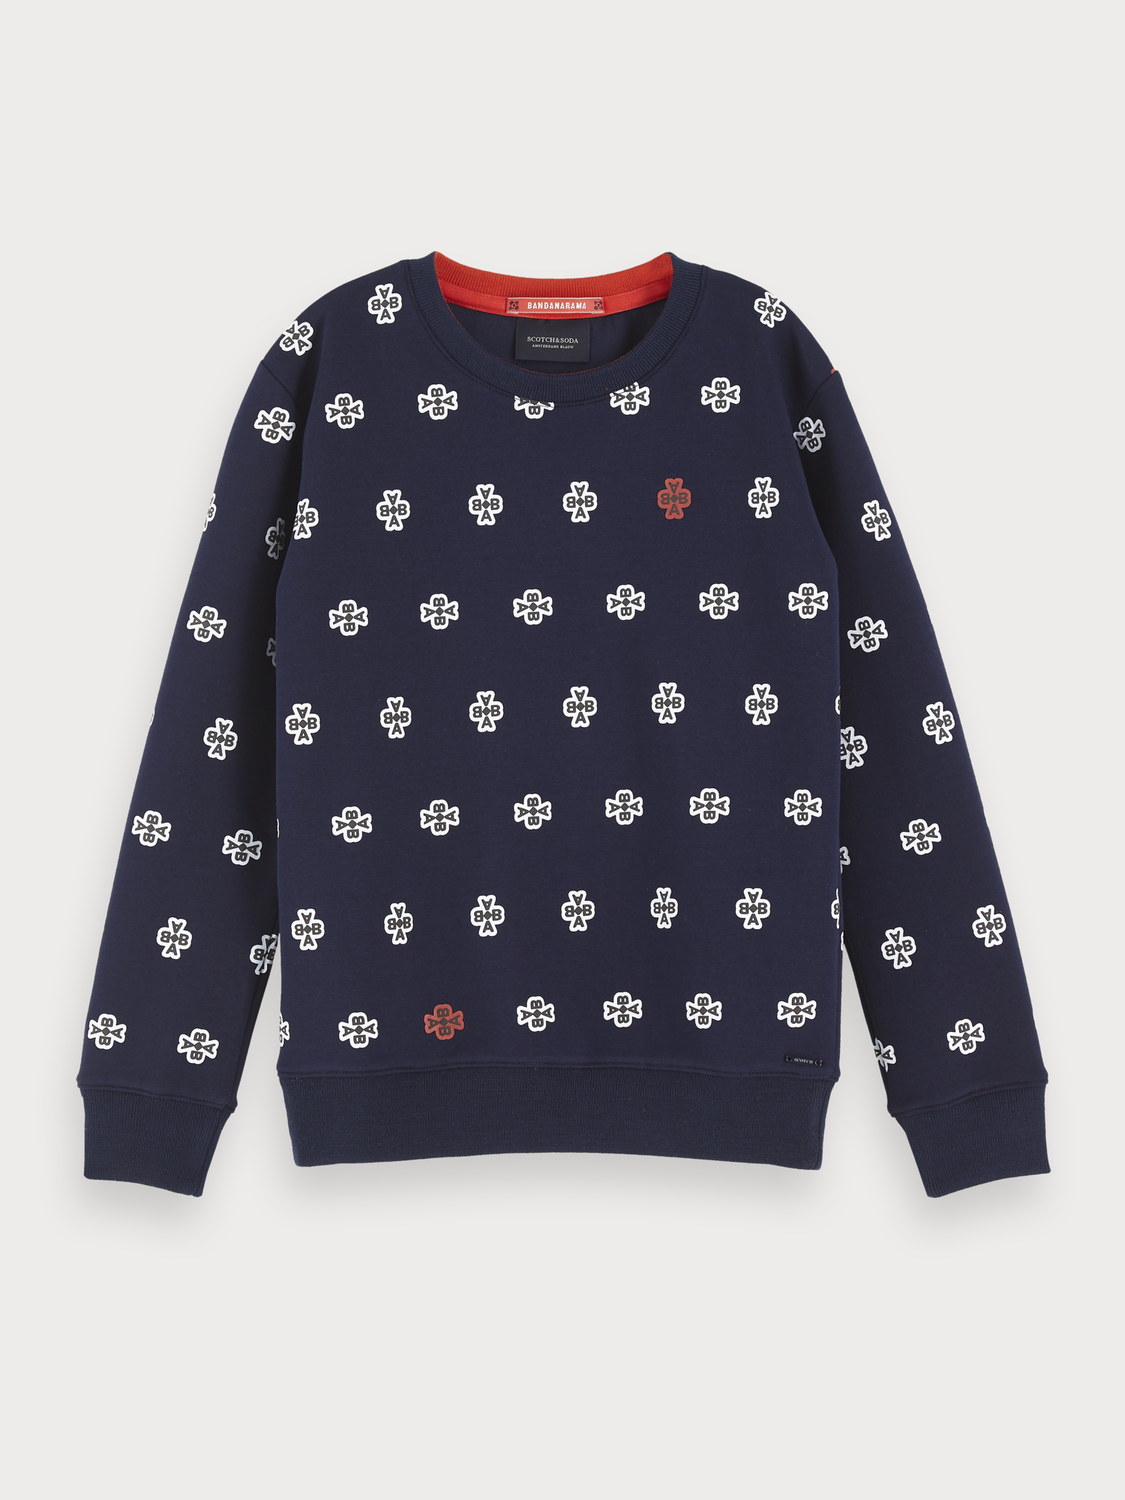 Girls All-Over Printed Sweater